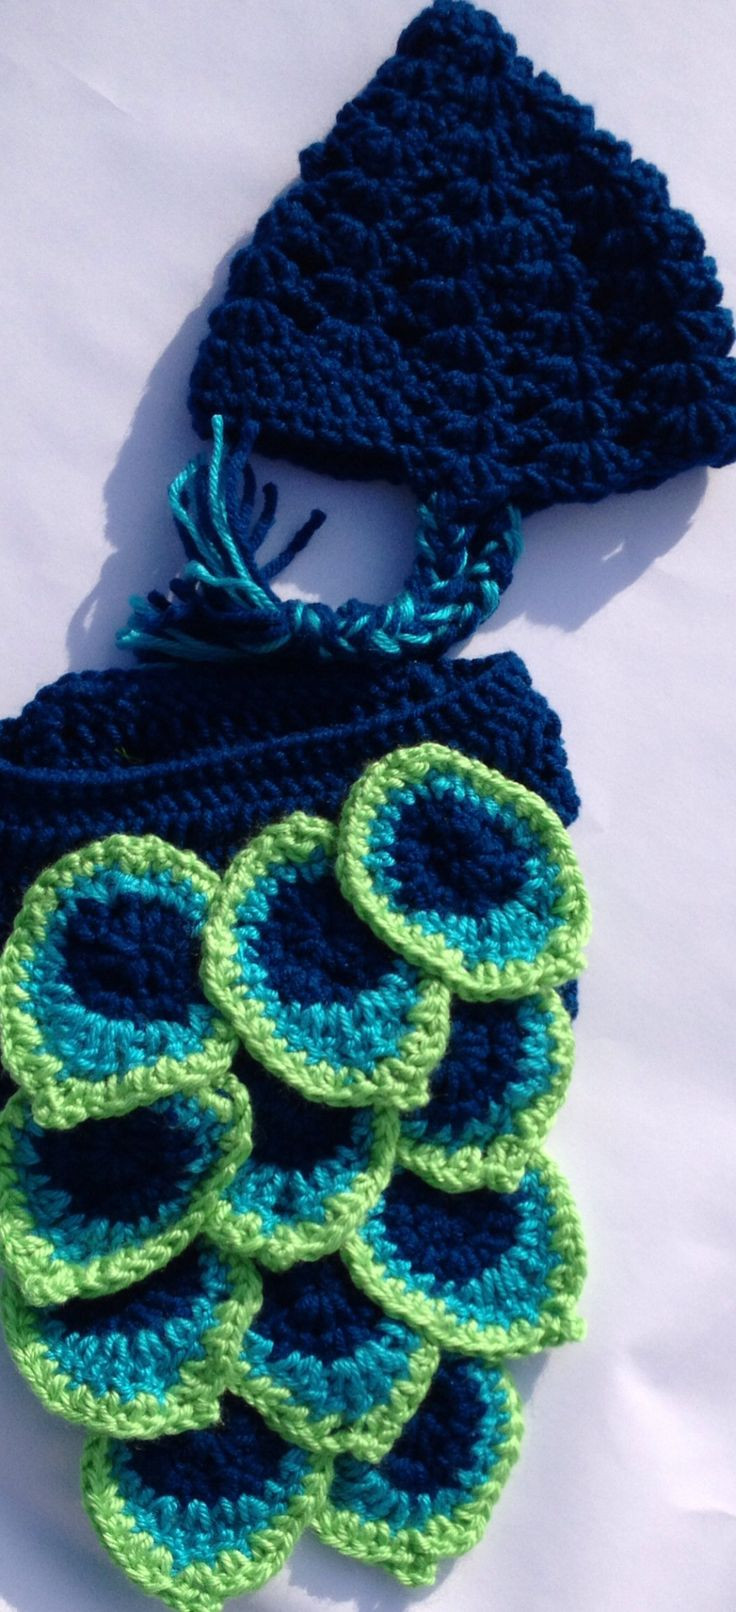 Free Diaper Cover Pattern Unique 187 Best Images About Crochet Diaper Cover Sets and Of Brilliant 41 Pictures Free Diaper Cover Pattern